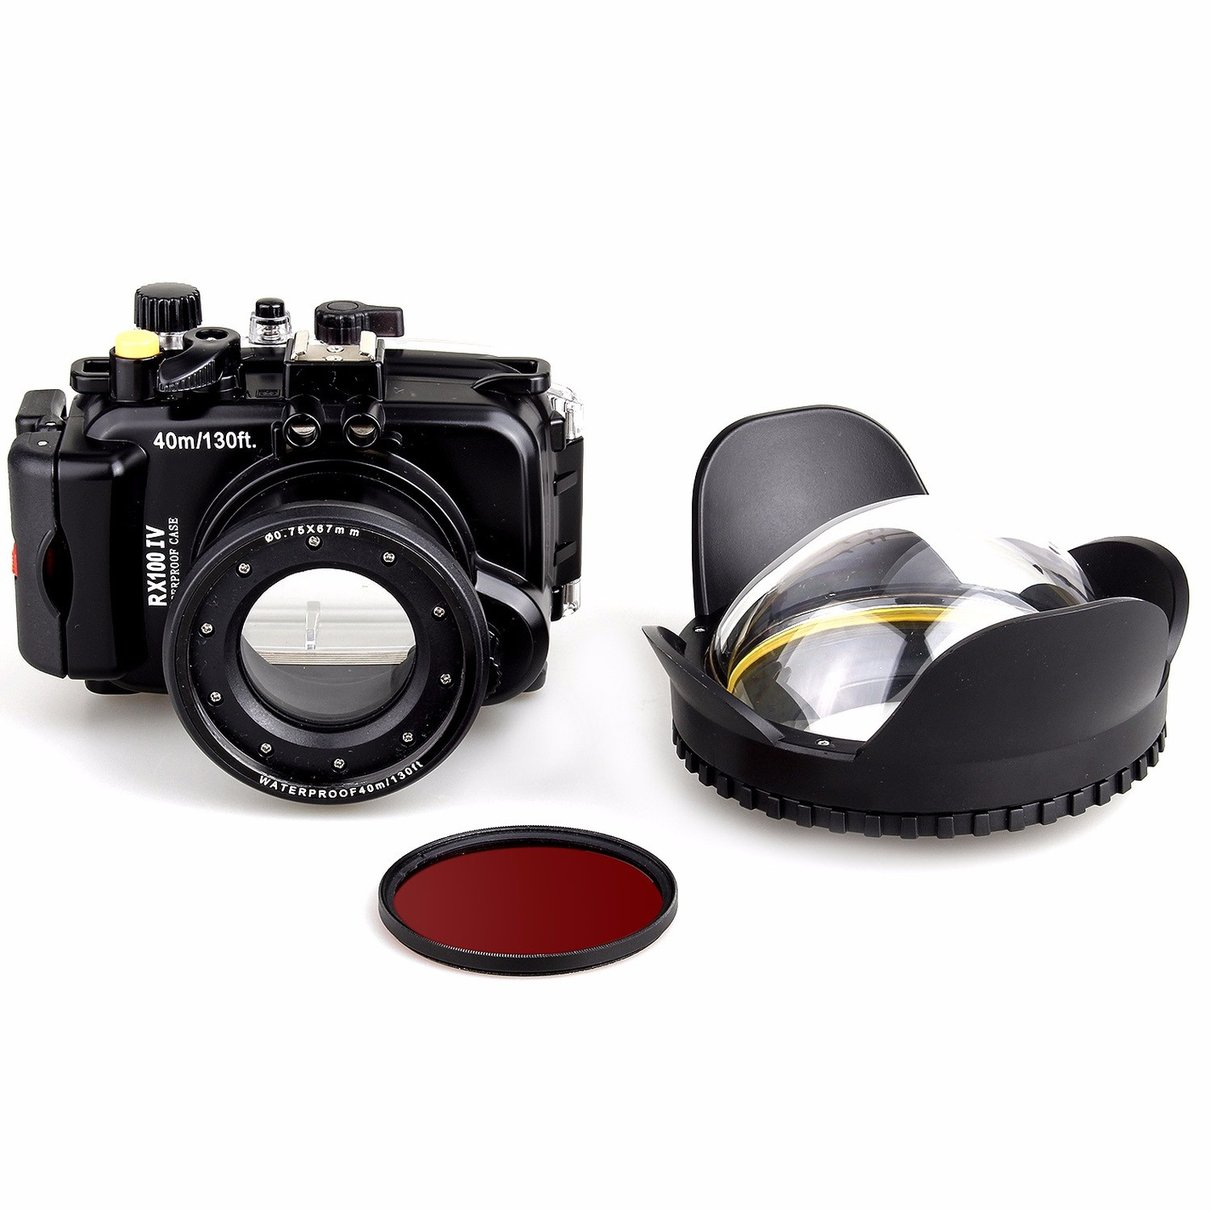 40M Underwater Waterproof Camera Housing Diving Case for Sony DSC RX100 IV RX100 M4 + Red Filter 67mm + 67mm Fisheye Lens nanibon кардиган